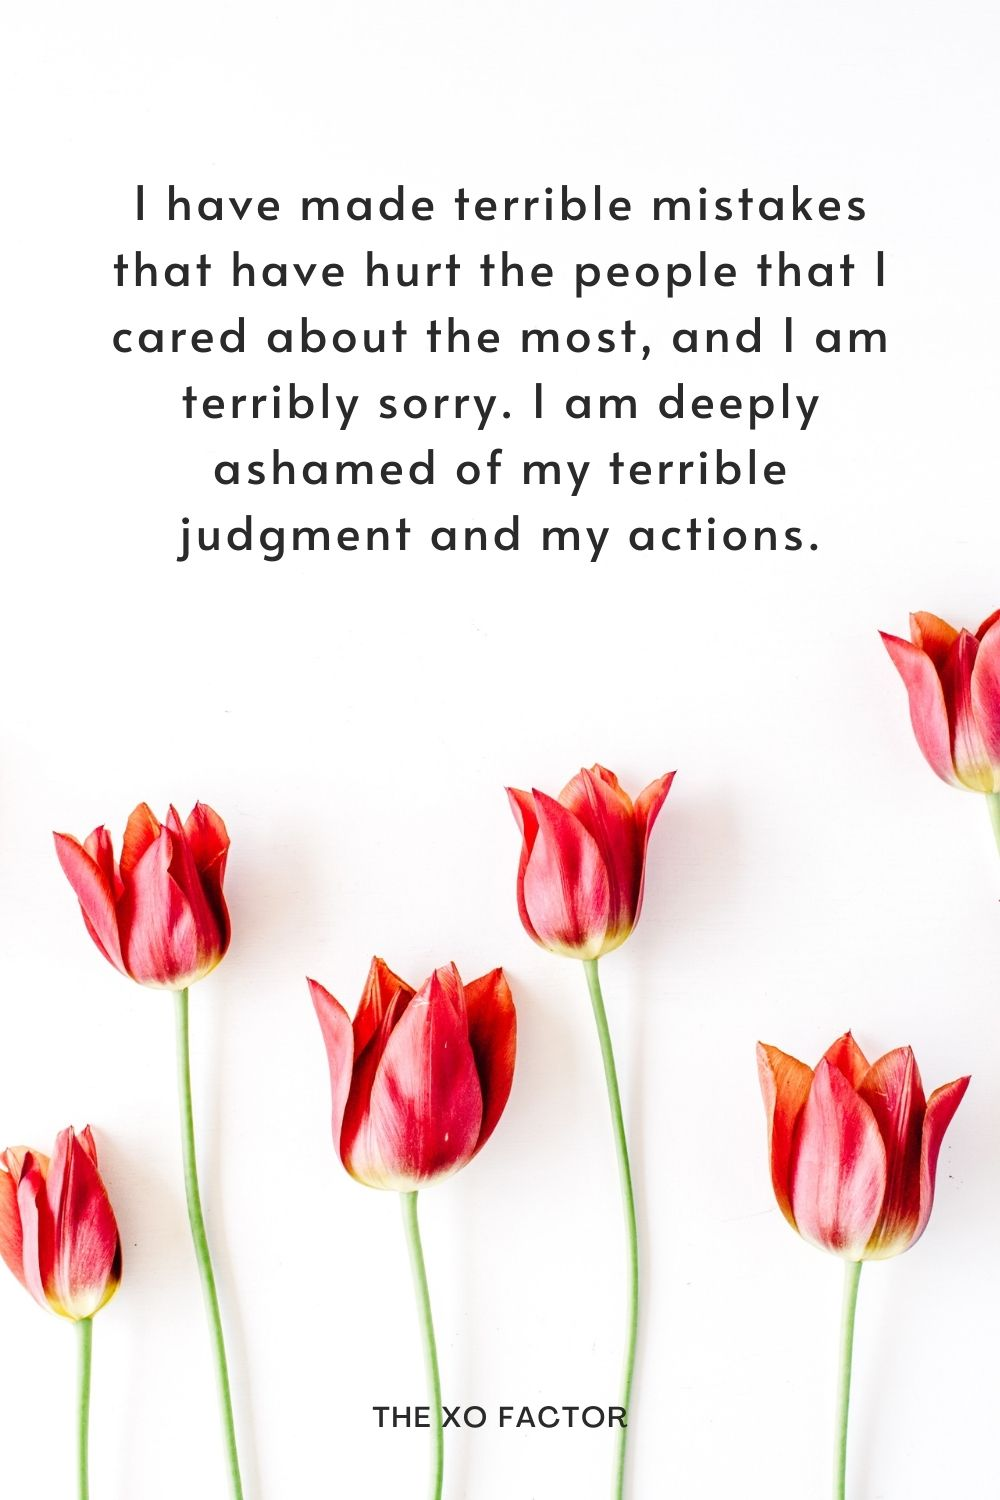 I have made terrible mistakes that have hurt the people that I cared about the most, and I am terribly sorry. I am deeply ashamed of my terrible judgment and my actions.